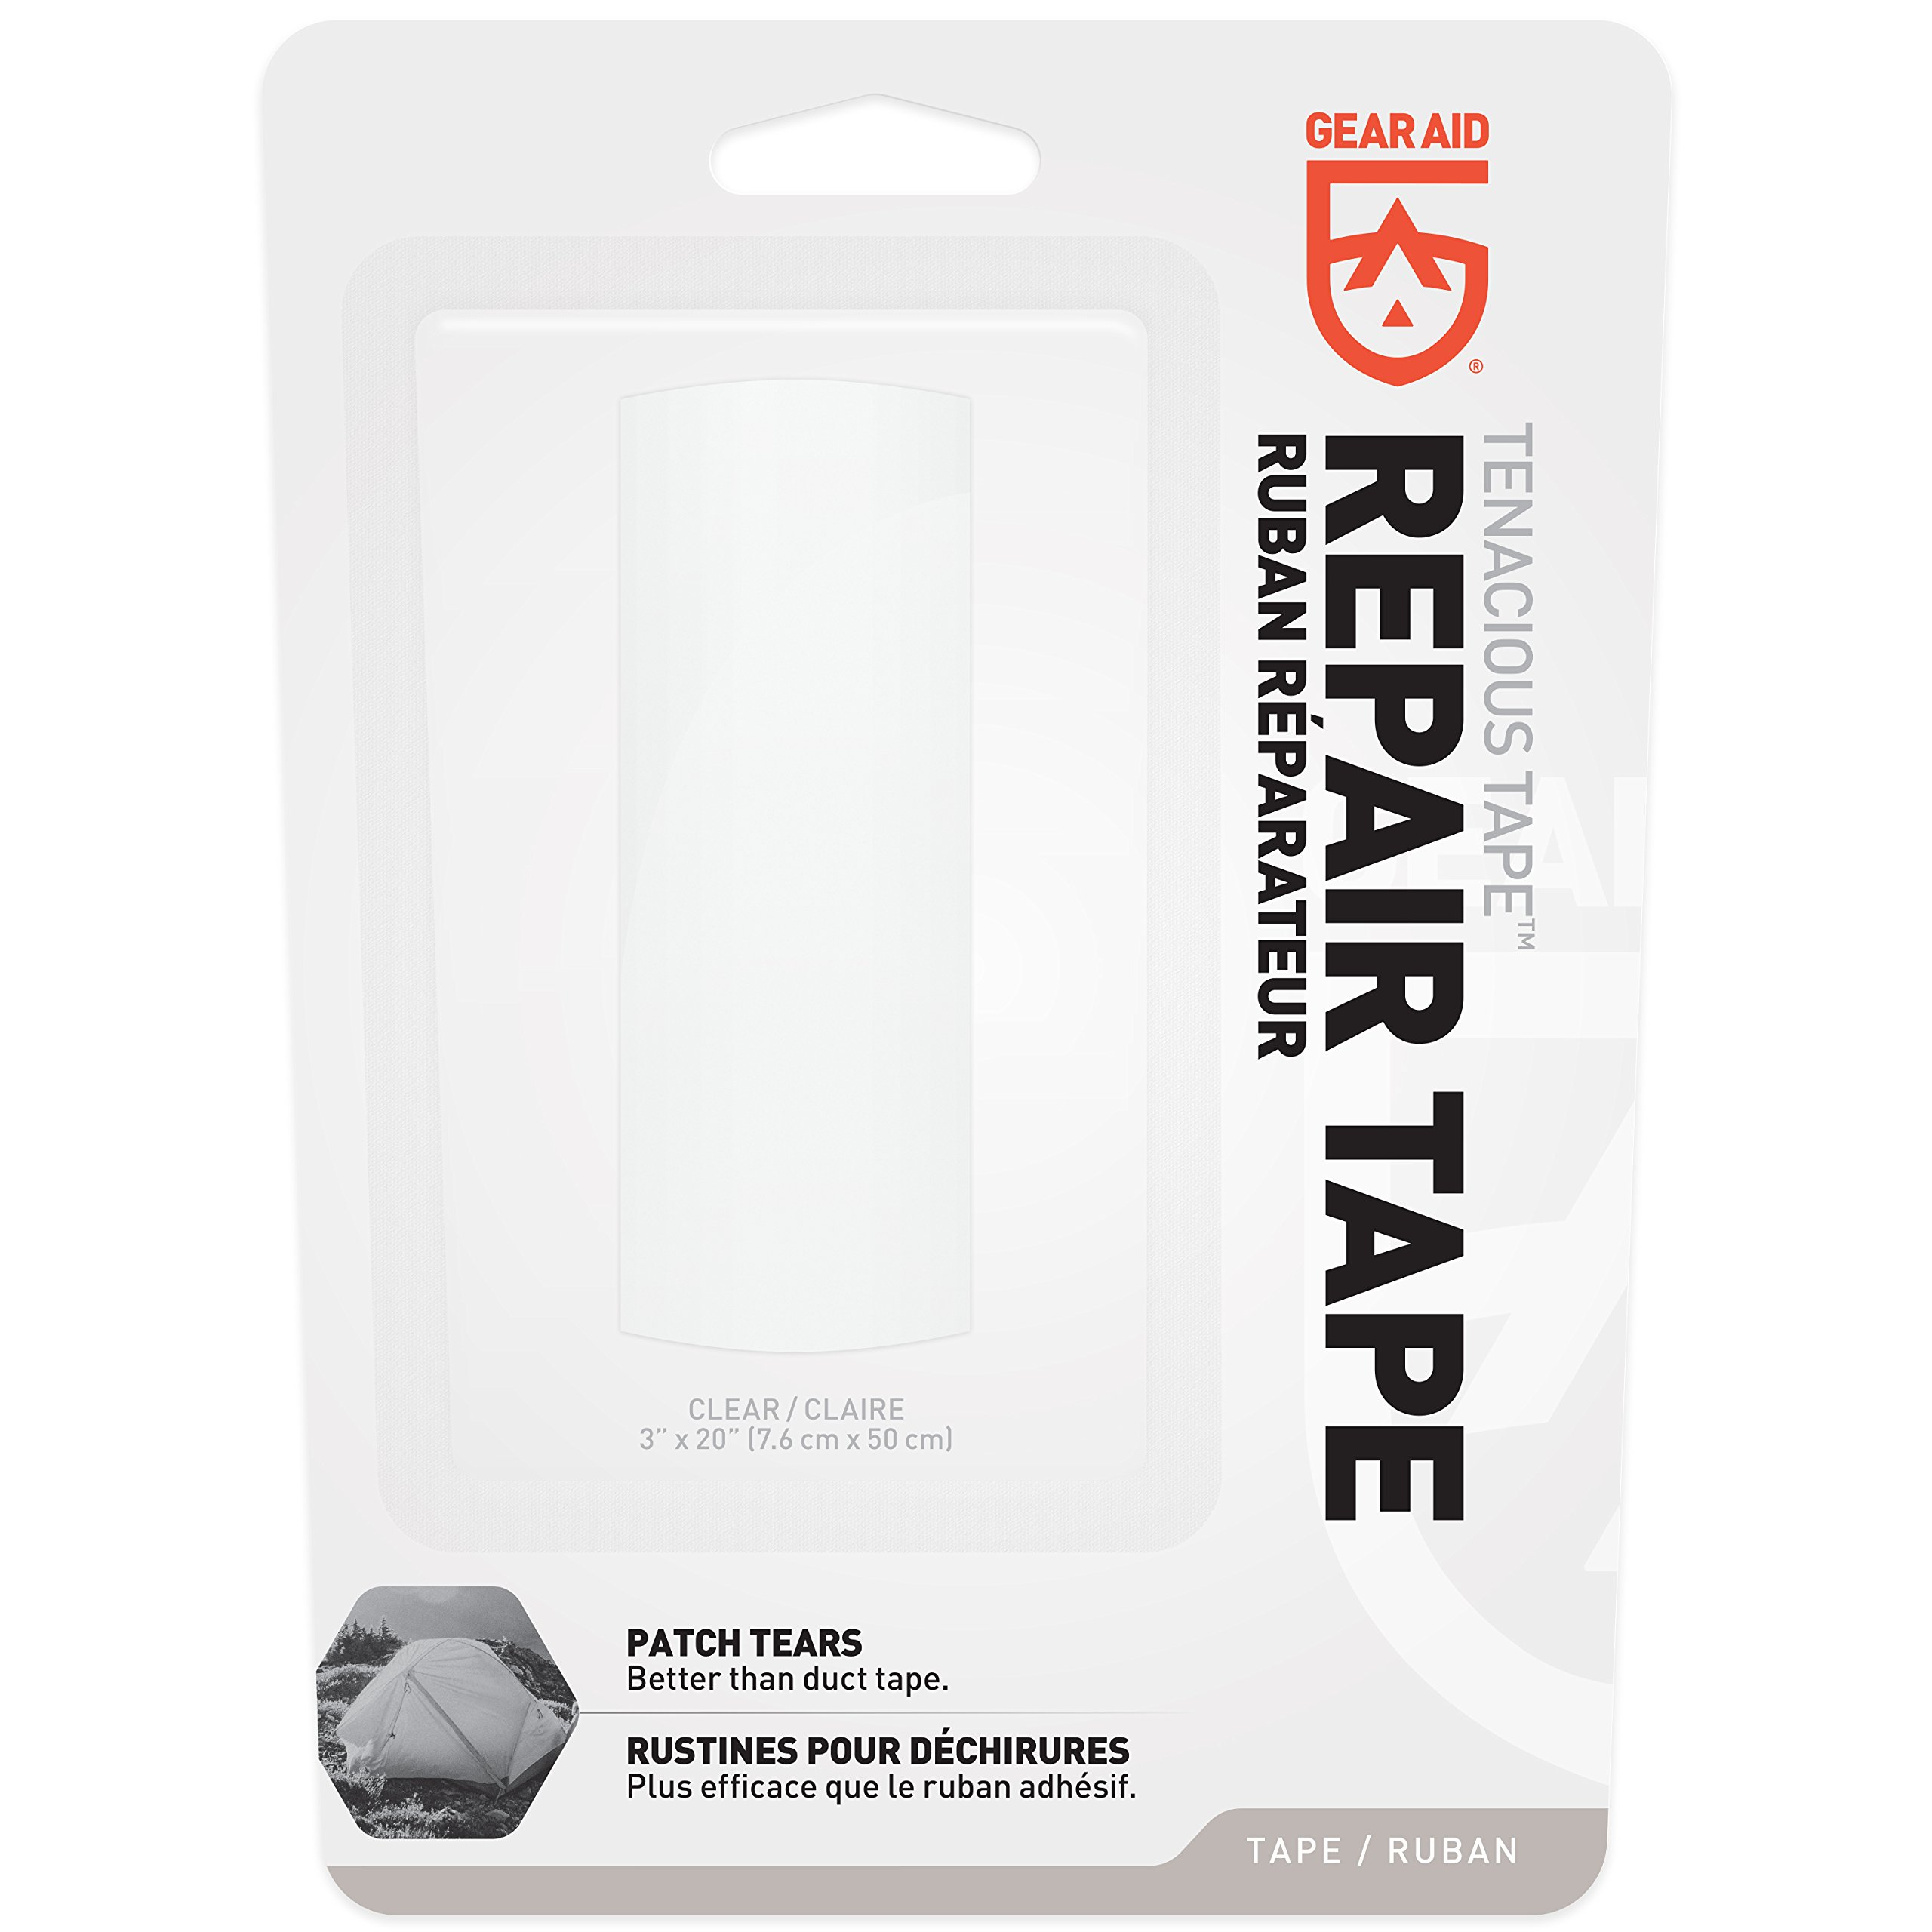 """Gear Aid Tenacious Tape Repair Tape for Fabric and Vinyl, 3"""" x 20"""" by Gear Aid (Image #2)"""